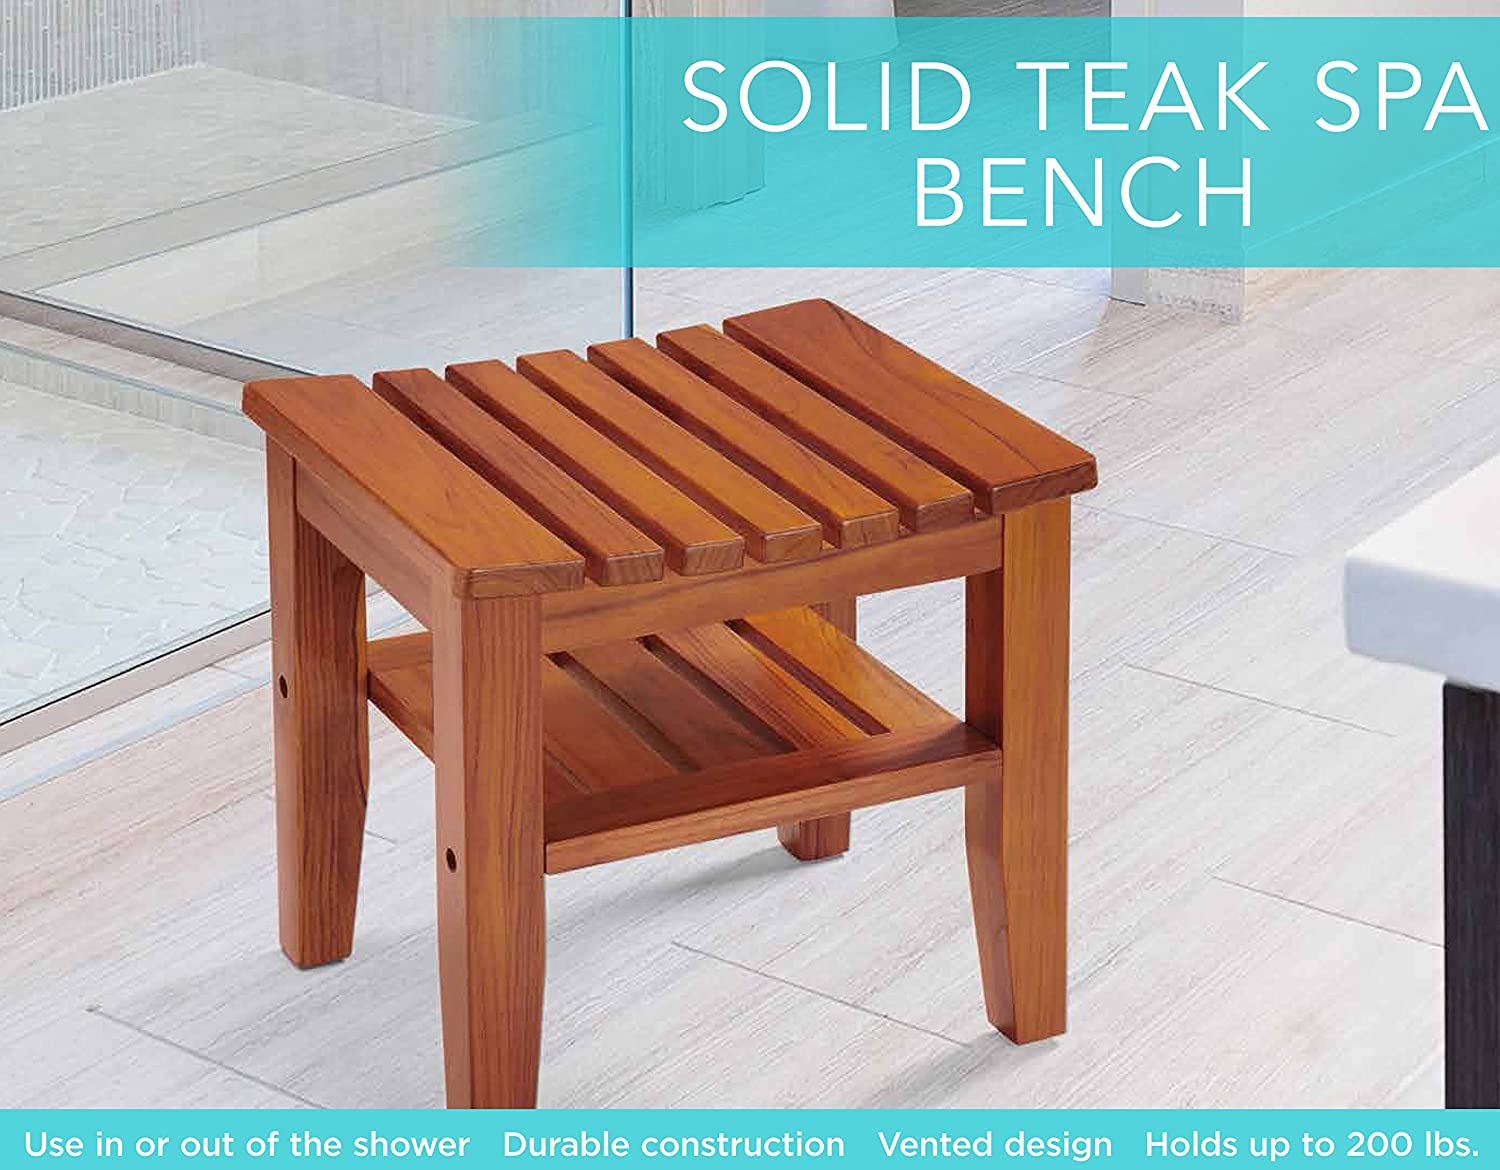 width a patio double asian shower world spa bench benefits the furniture stool owning of teak